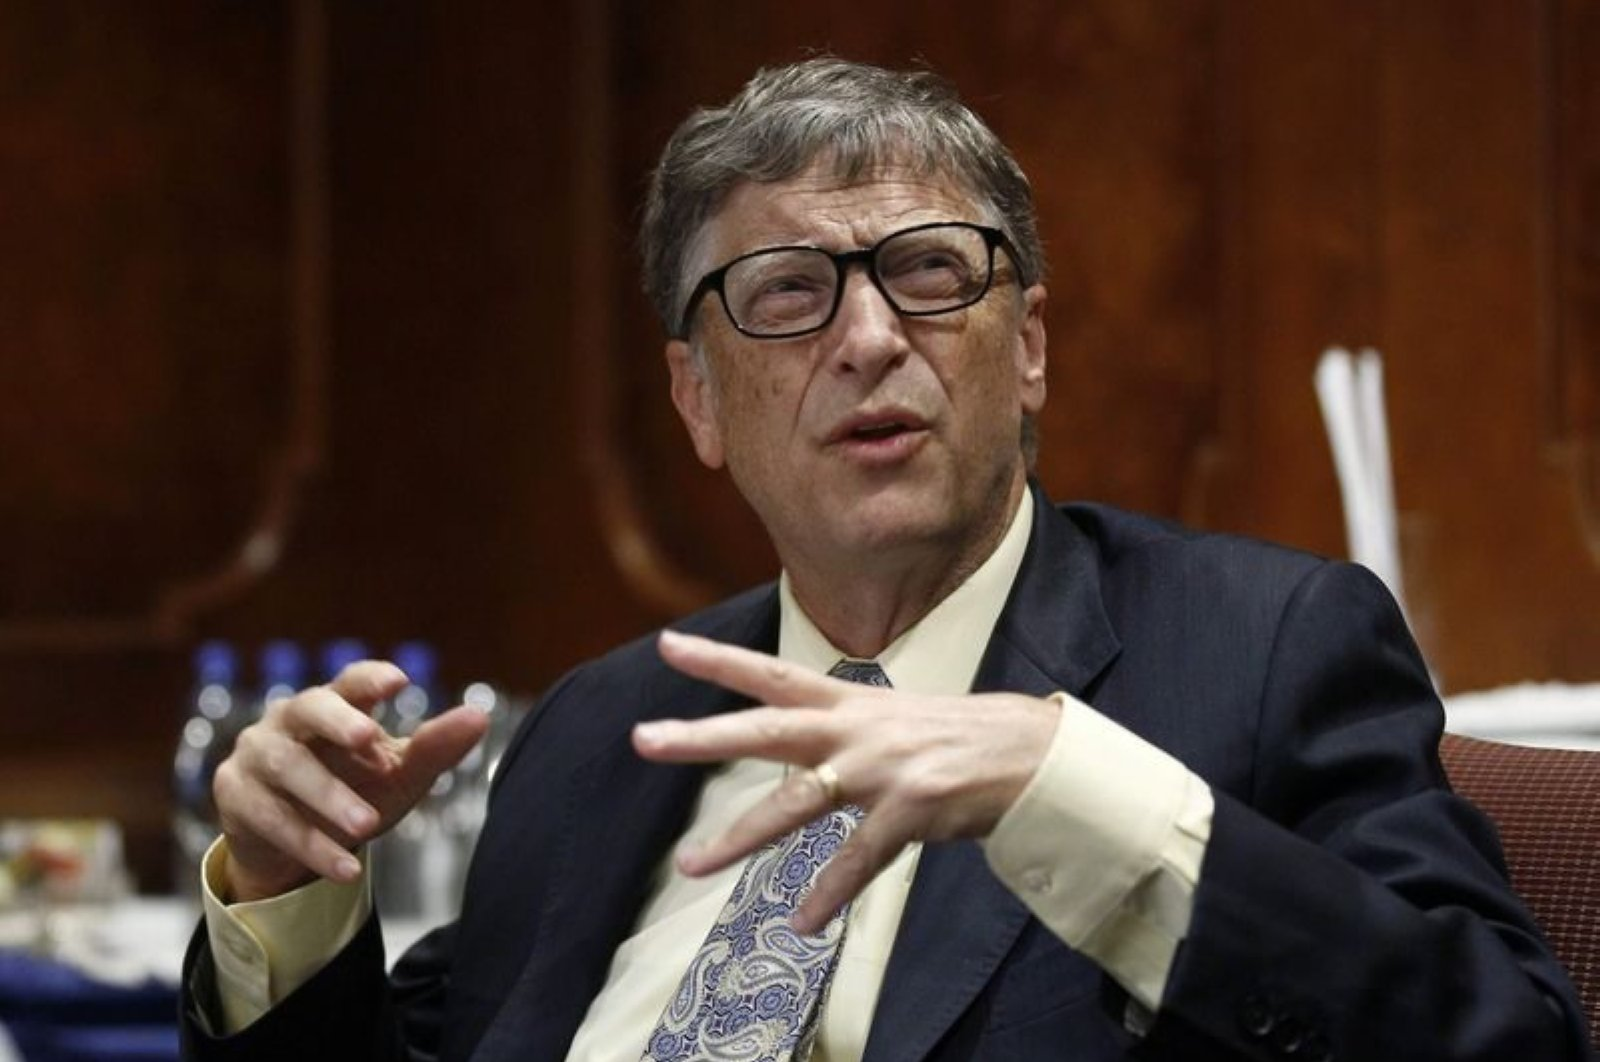 Microsoft technology advisor Bill Gates speaks in a news conference in Ethiopia's capital Addis Ababa July 24, 2014. (Reuters Photo)